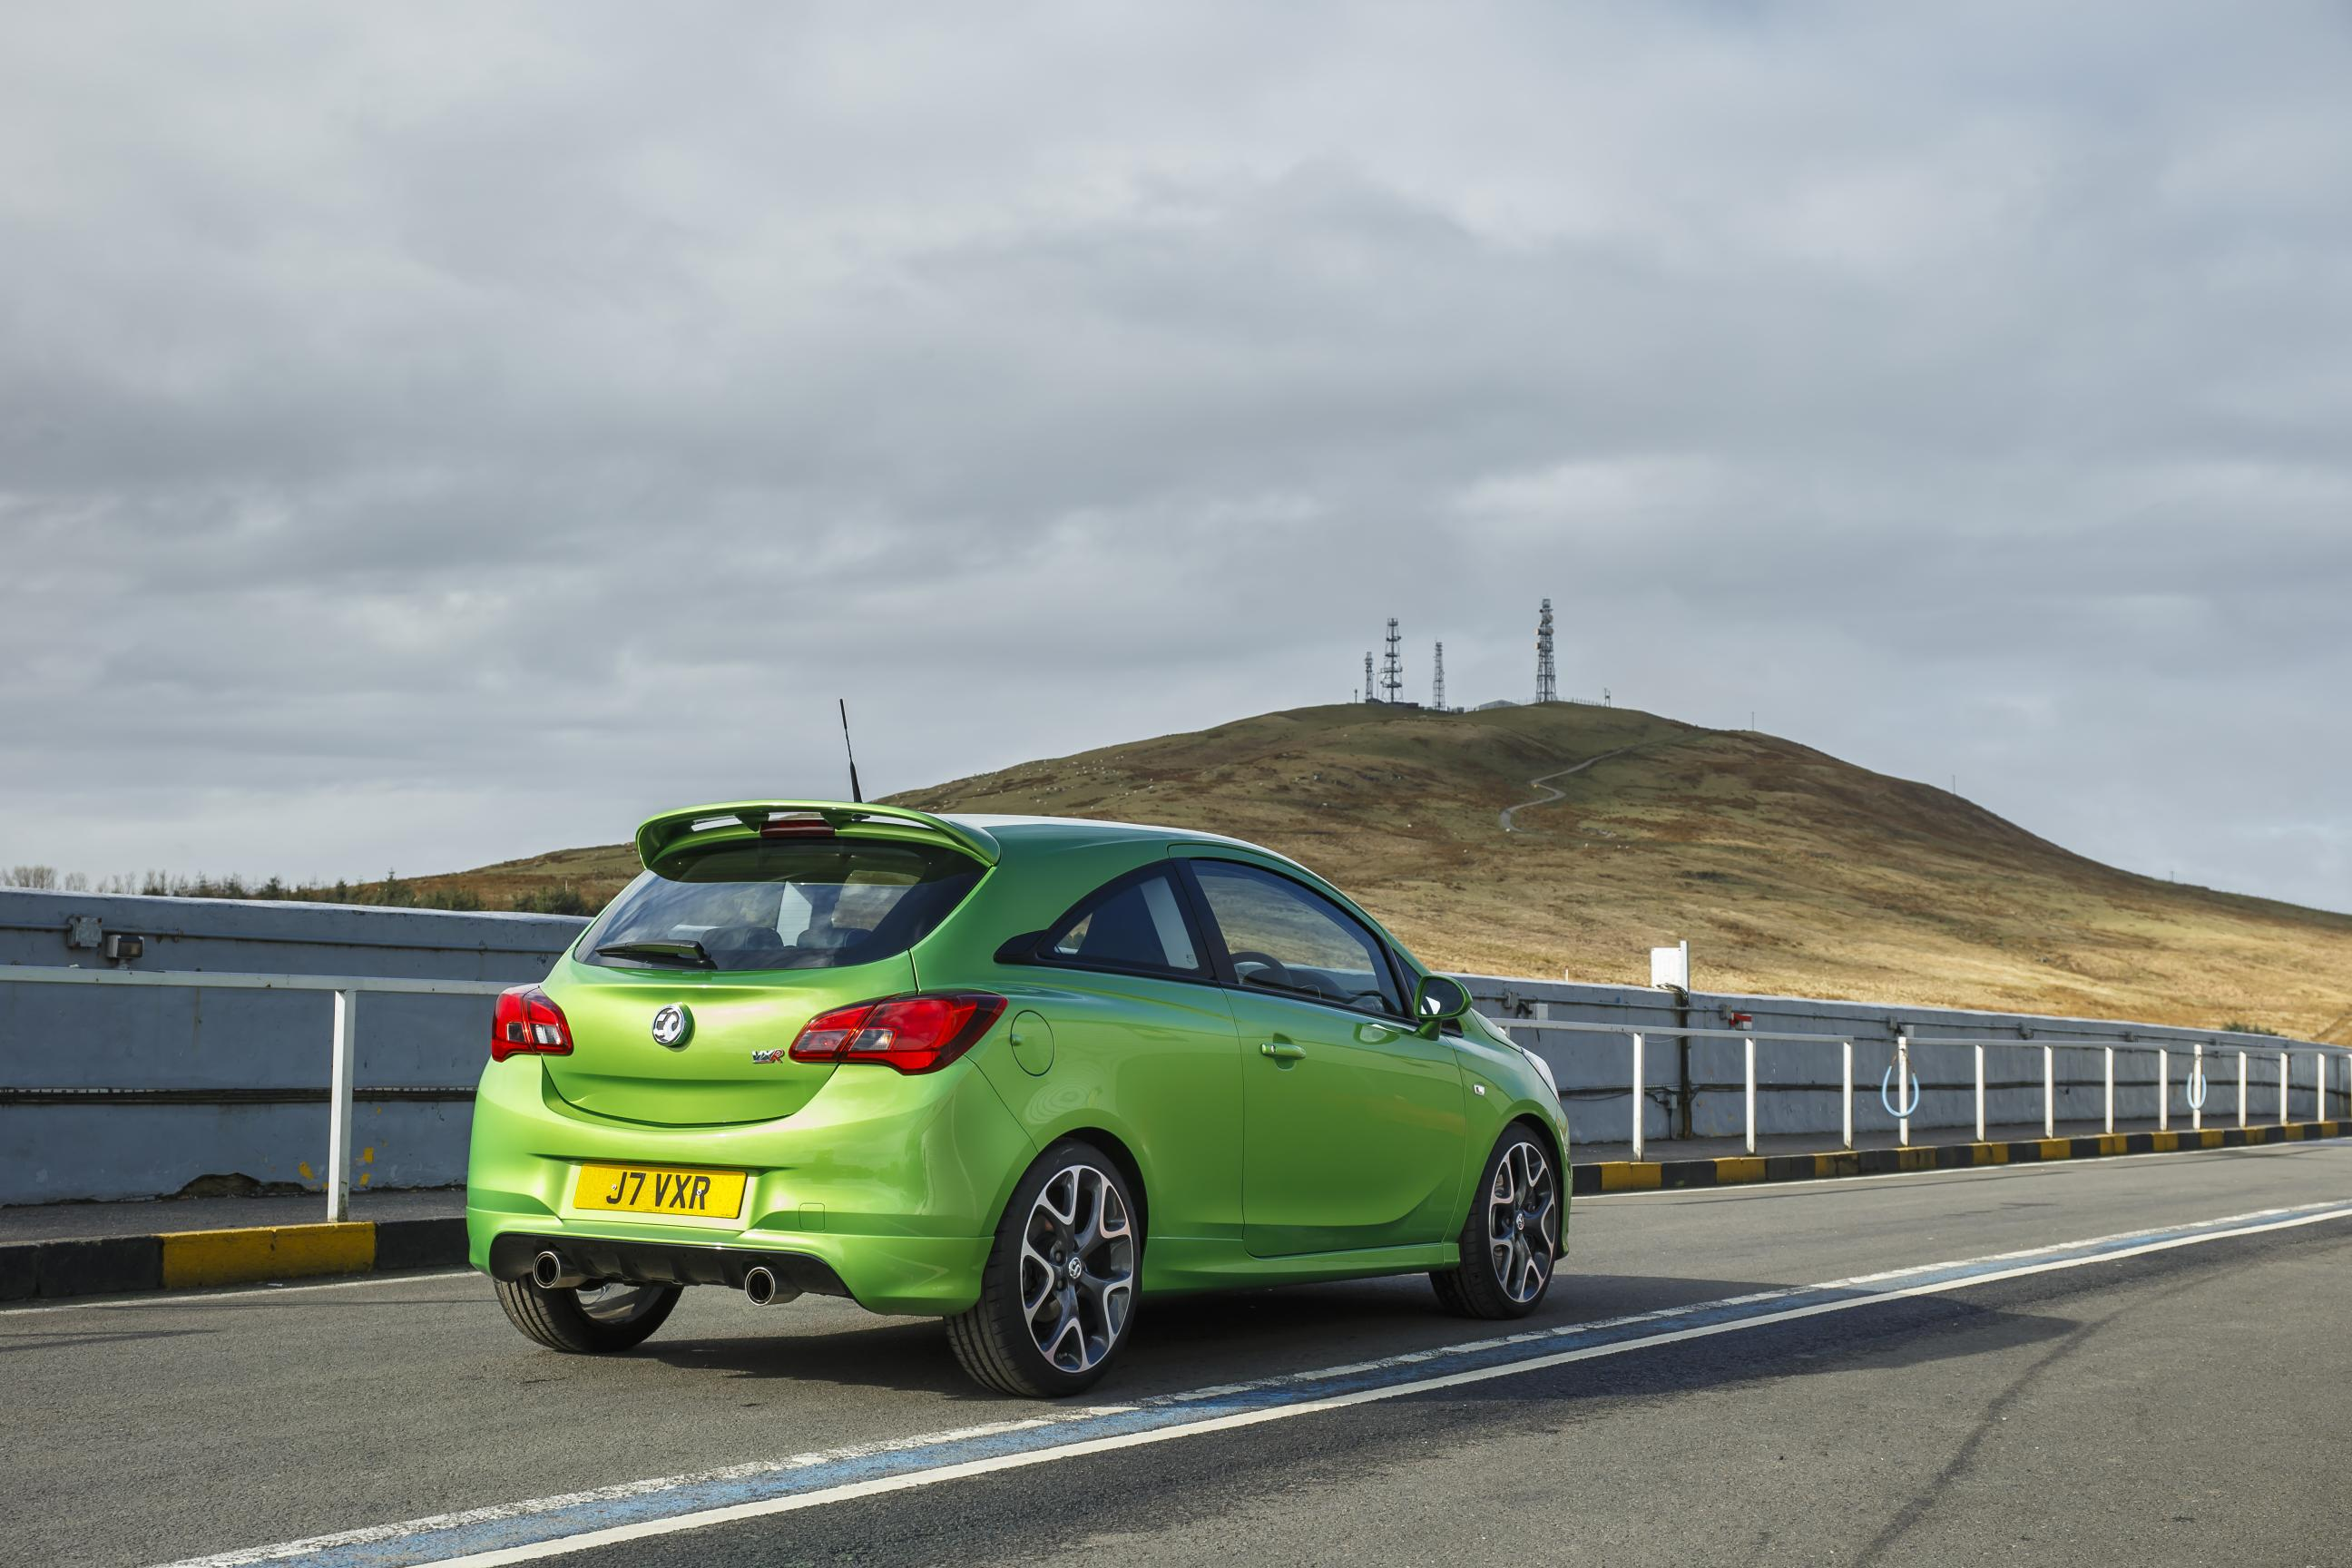 Vauxhall Corsa rear view in green